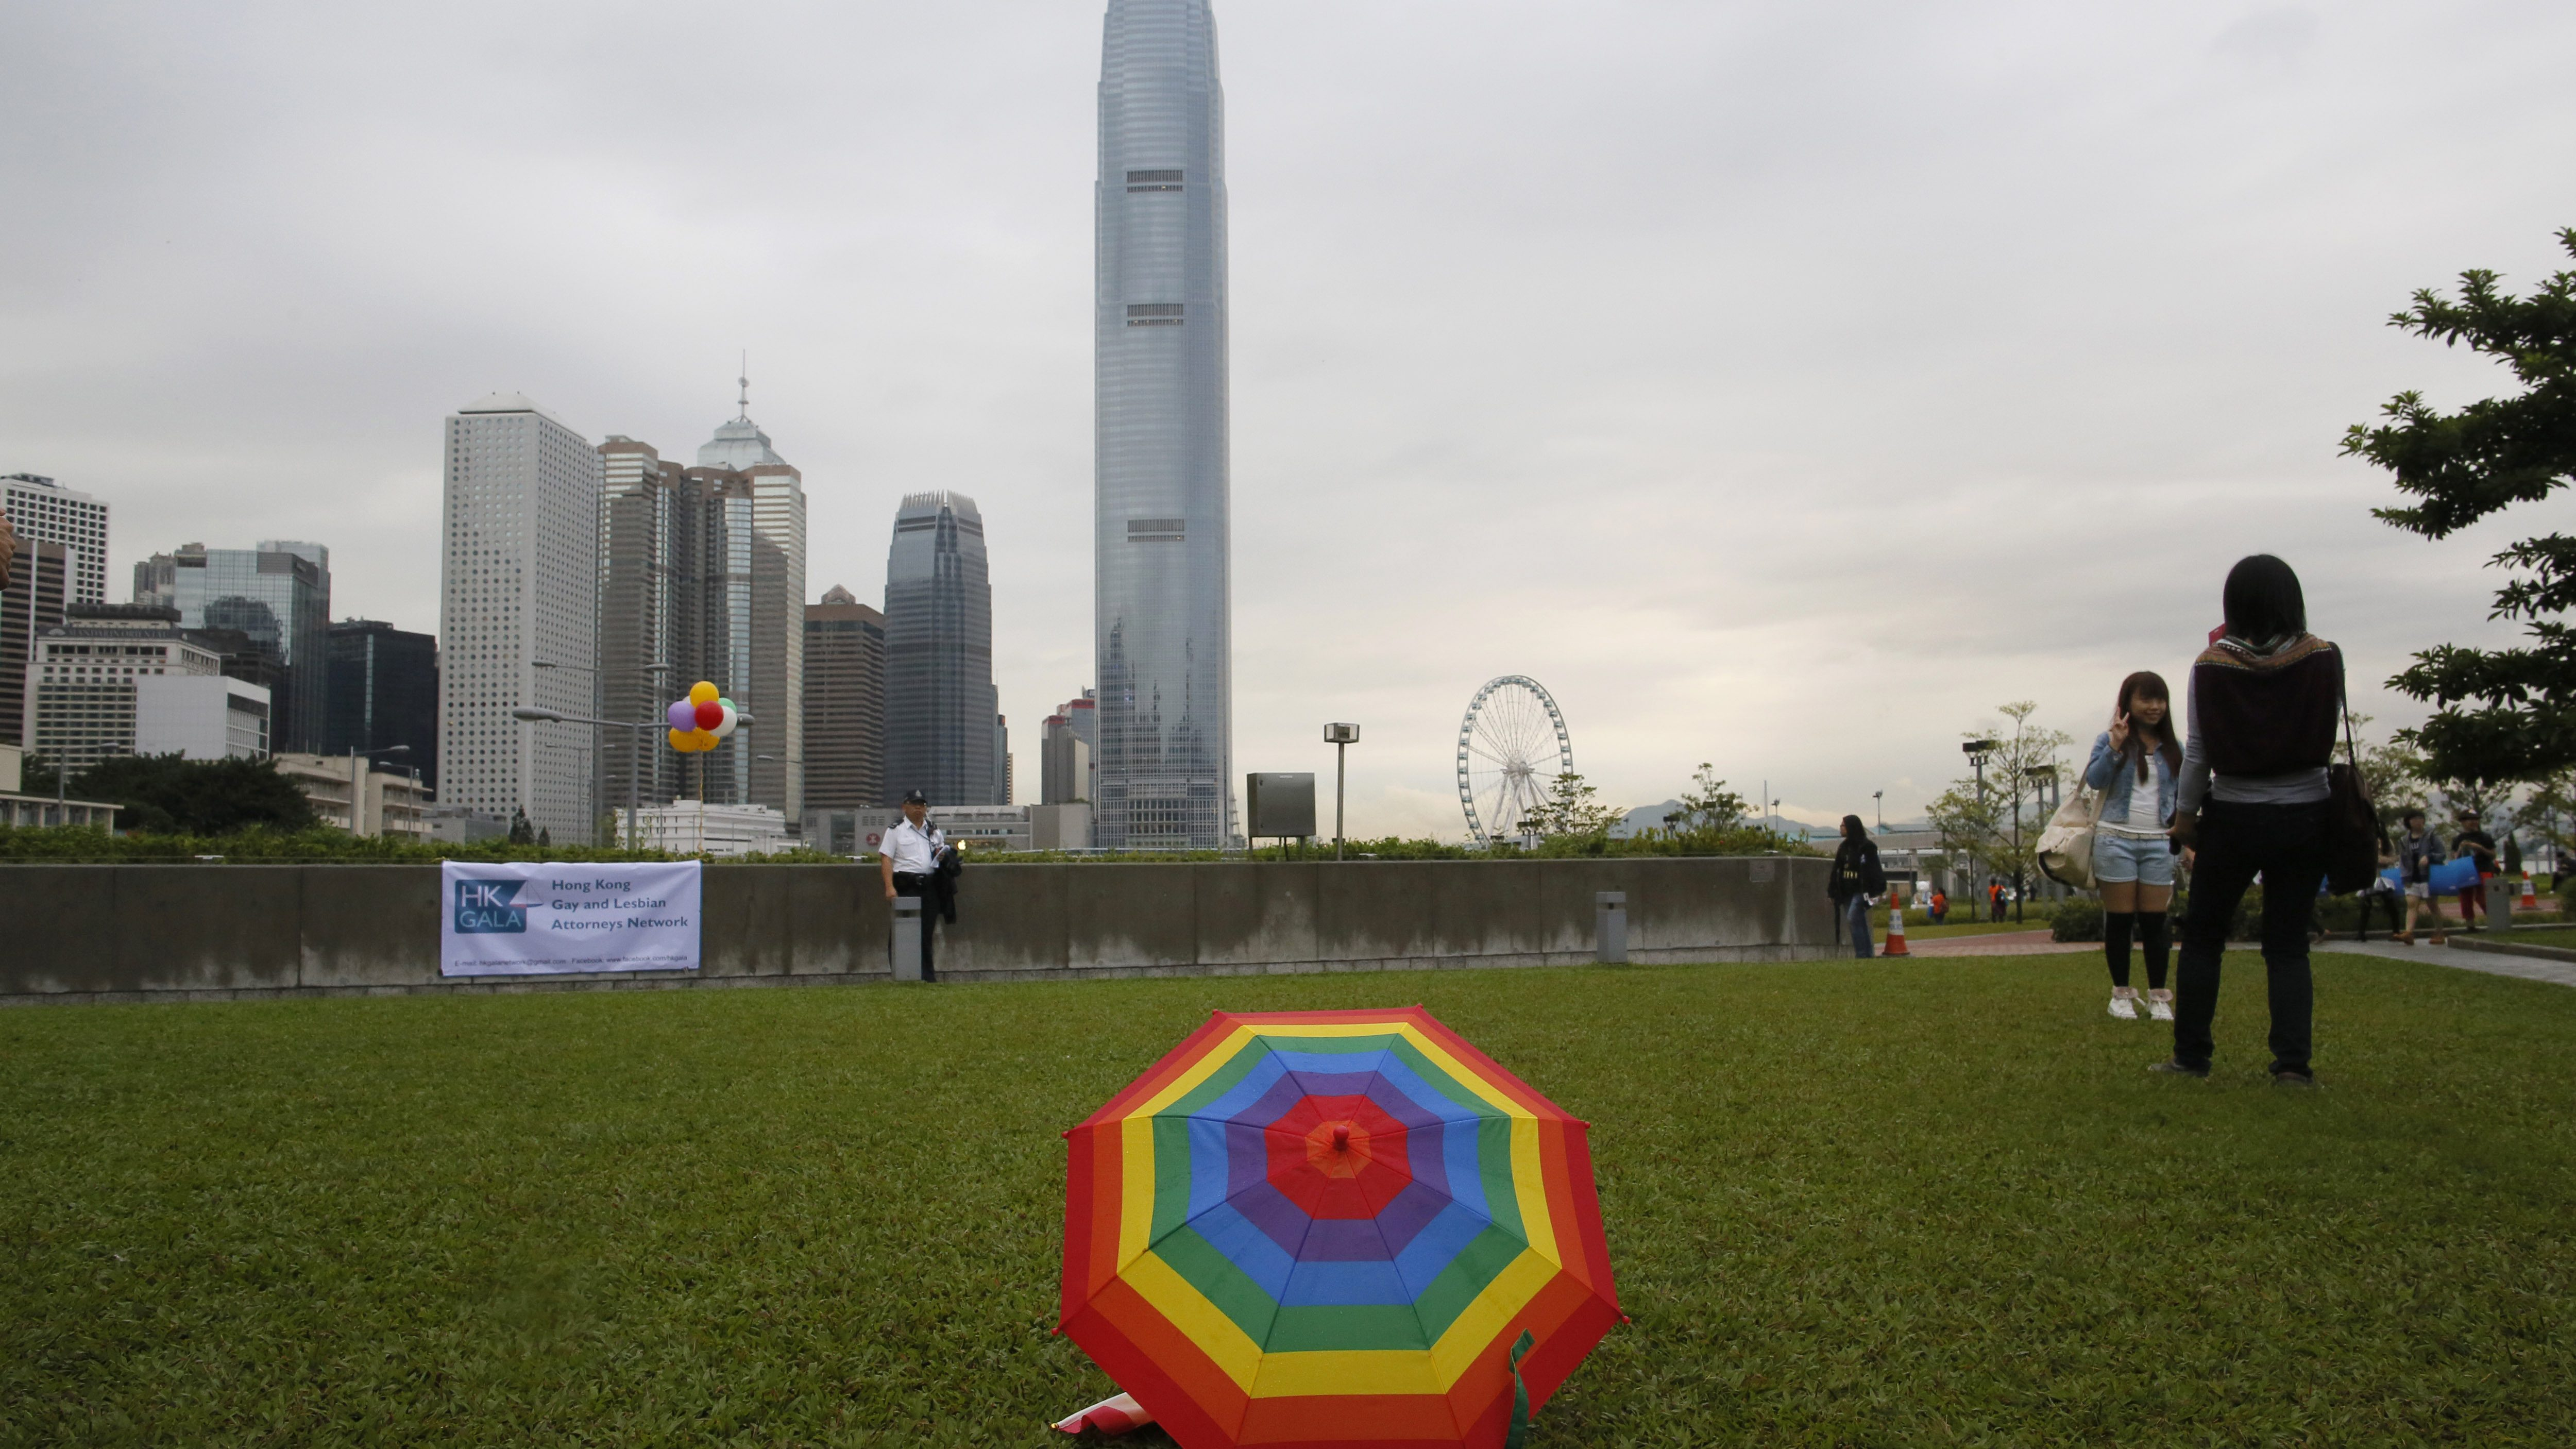 A rainbow umbrella is placed during a gay rally in Hong Kong Saturday, Nov. 8, 2014. Thousands of people took part in the annual Gay Pride Parade including representatives from the mainland and Taiwan. (AP Photo/Vincent Yu)